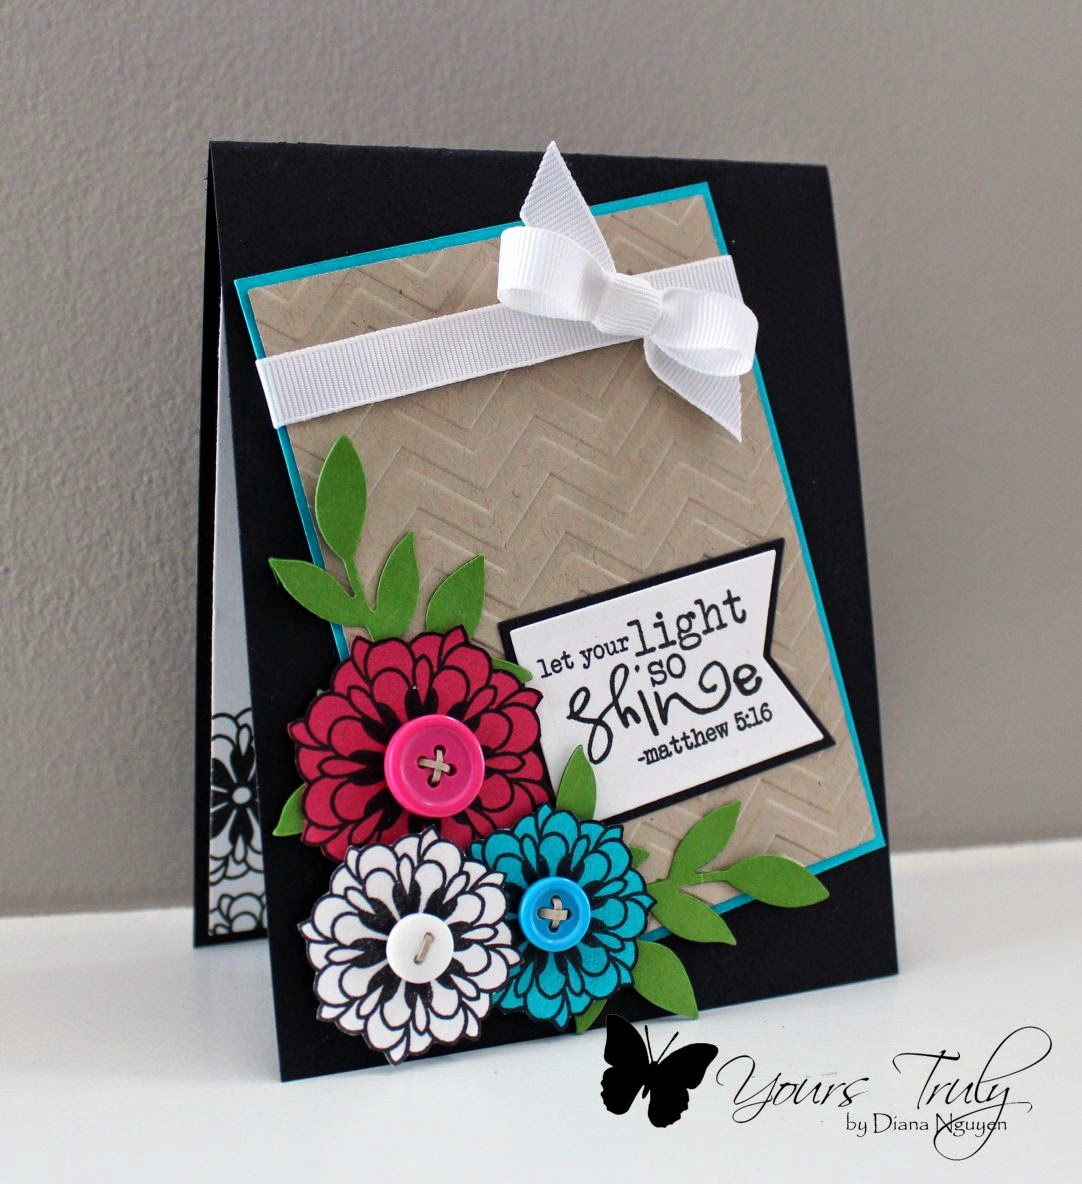 Diana Nguyen, let it be, Verve, handmade, card